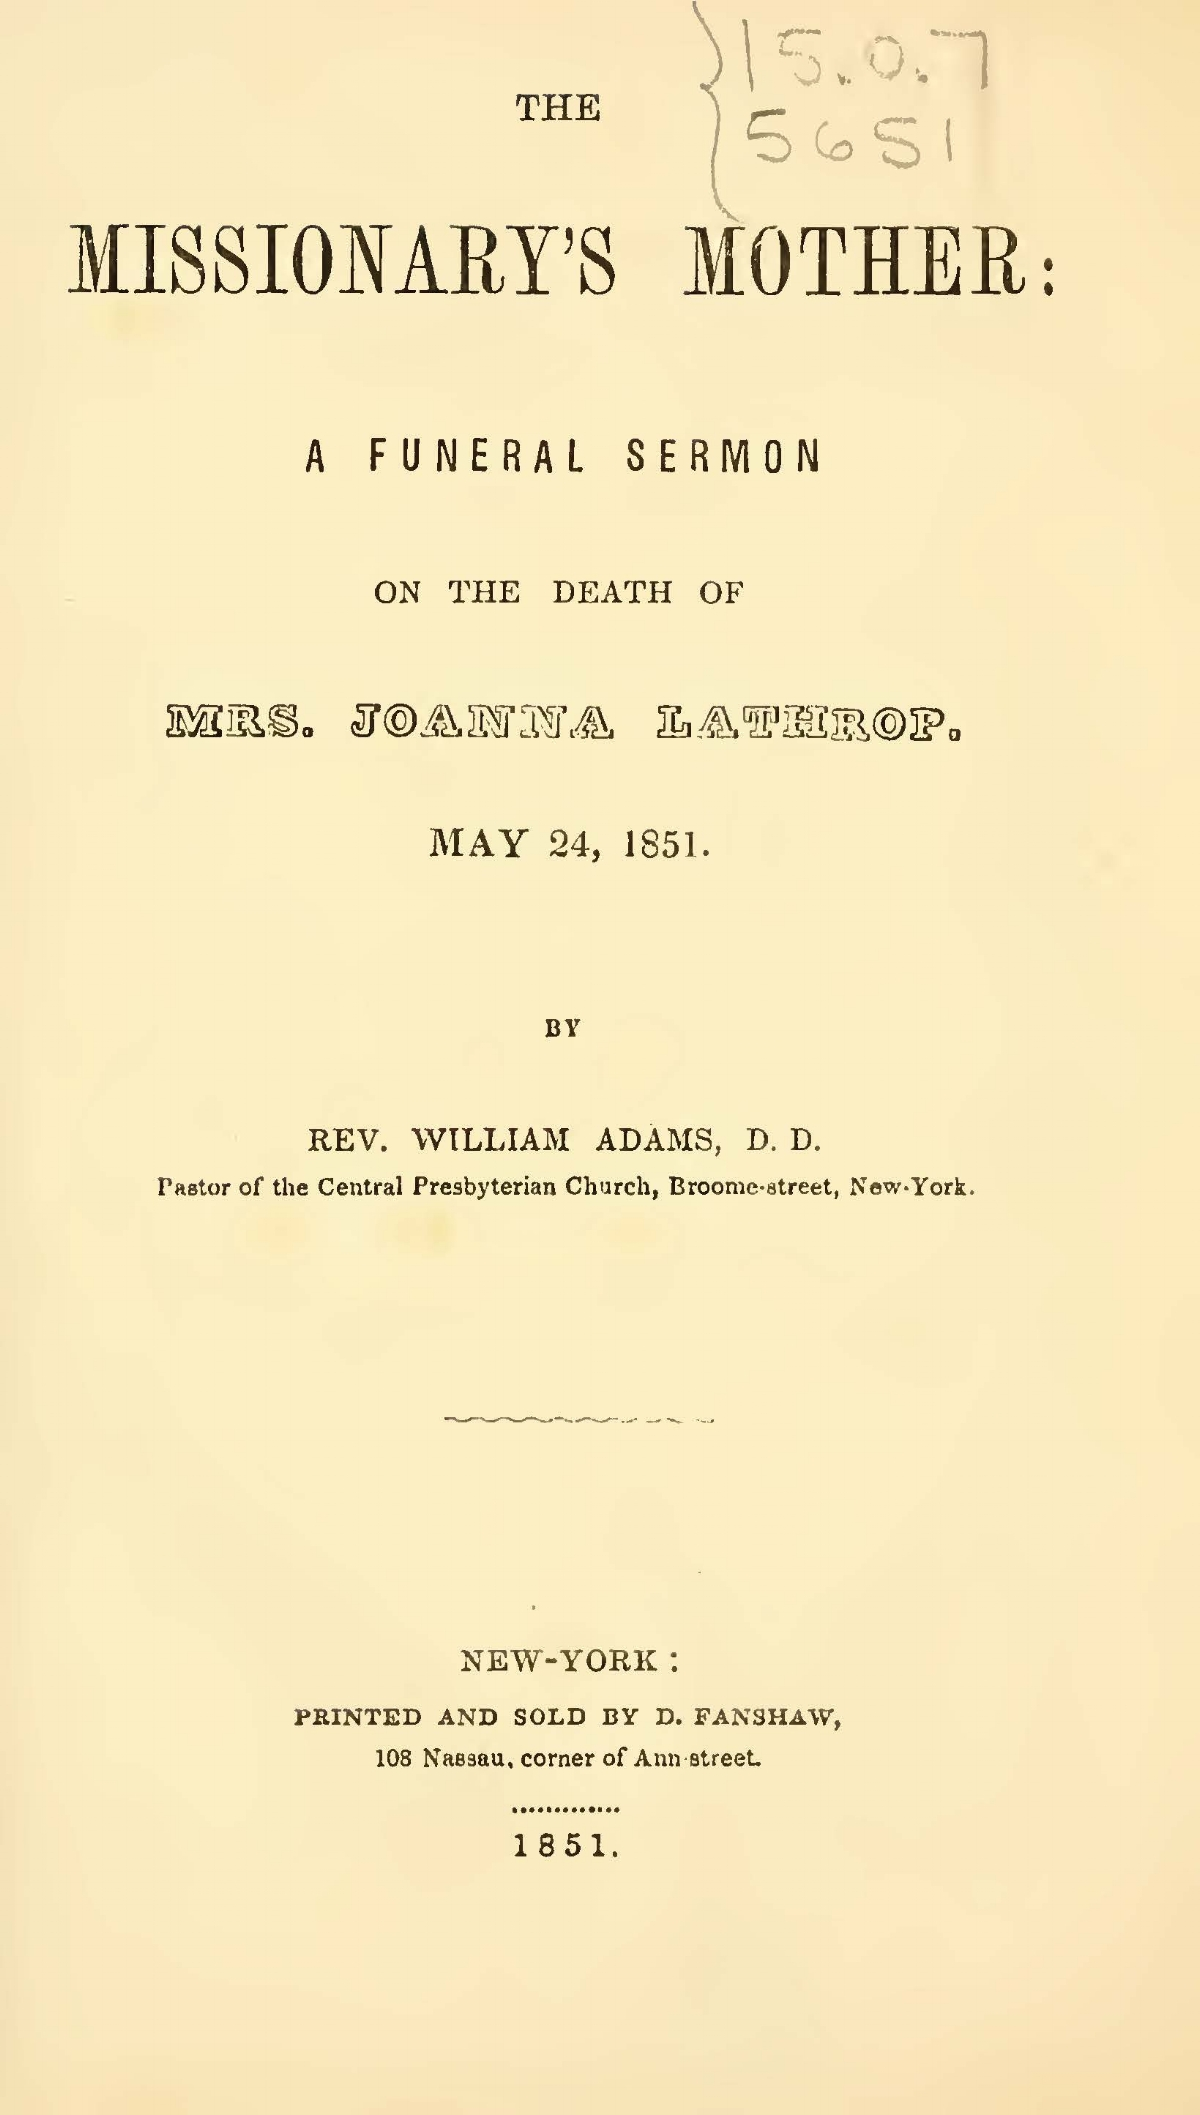 Adams, William, The Missionary's Mother Title Page.jpg